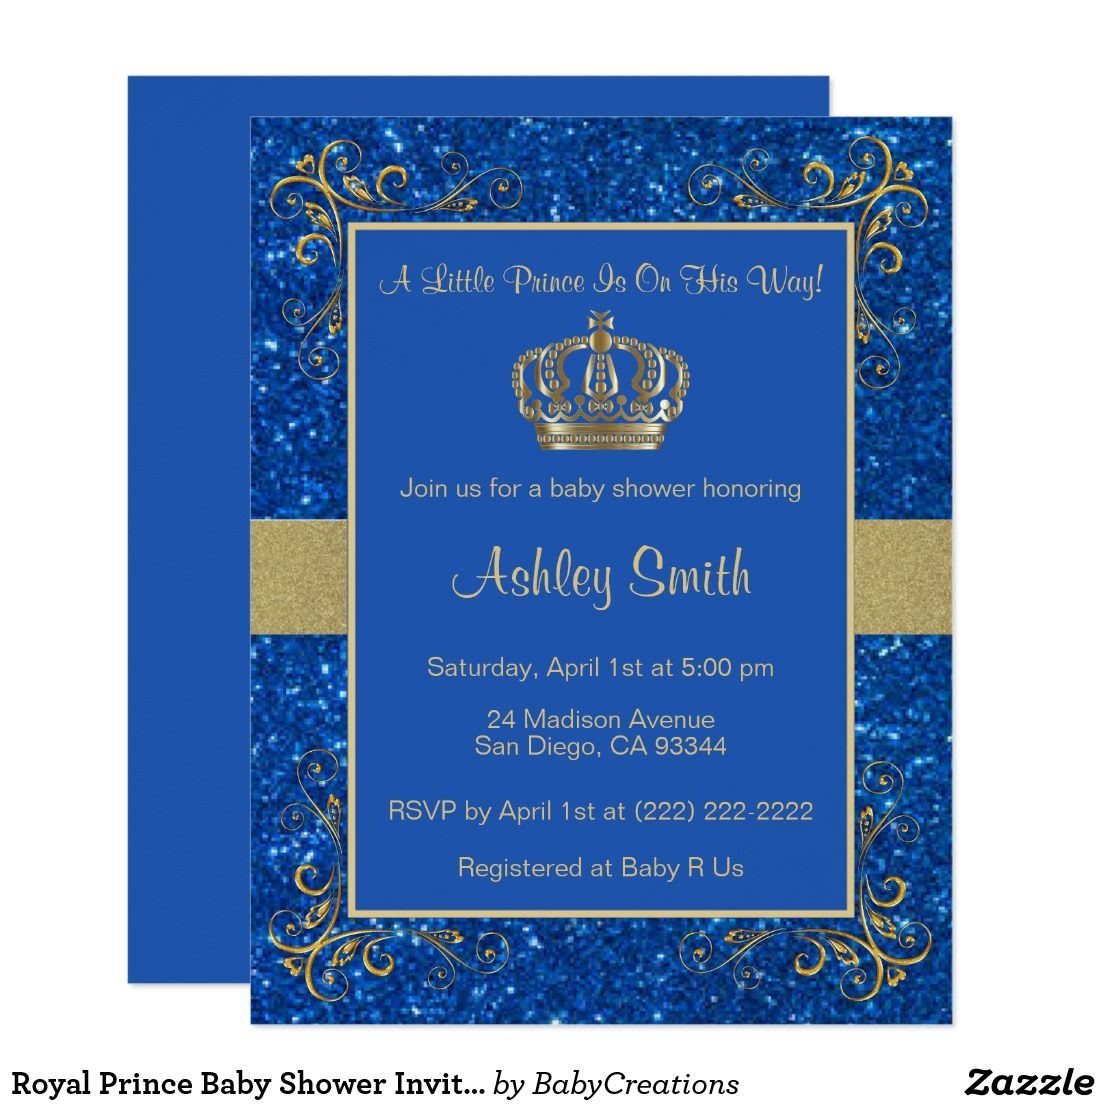 Royal Prince Baby Shower Invitation - Personalized Royal Blue ...